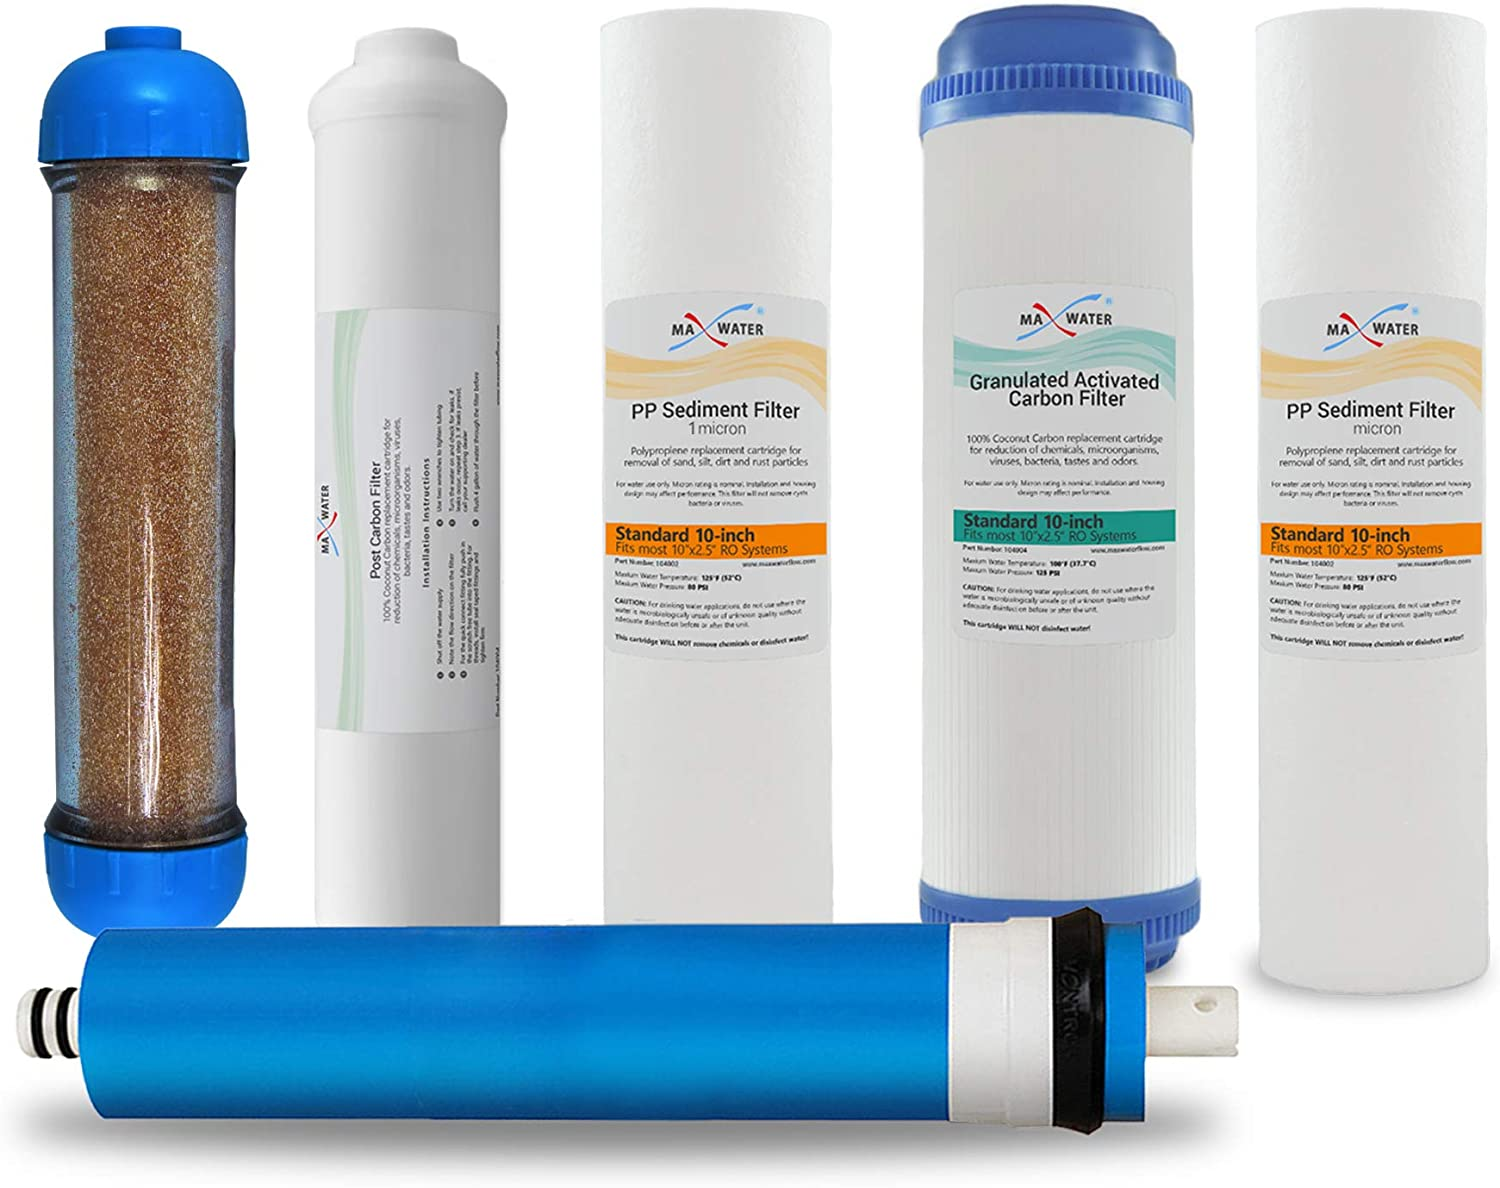 Max Water 6 Stage Reverse Now free shipping Our shop most popular RO Filter DI Replacement Osmosis